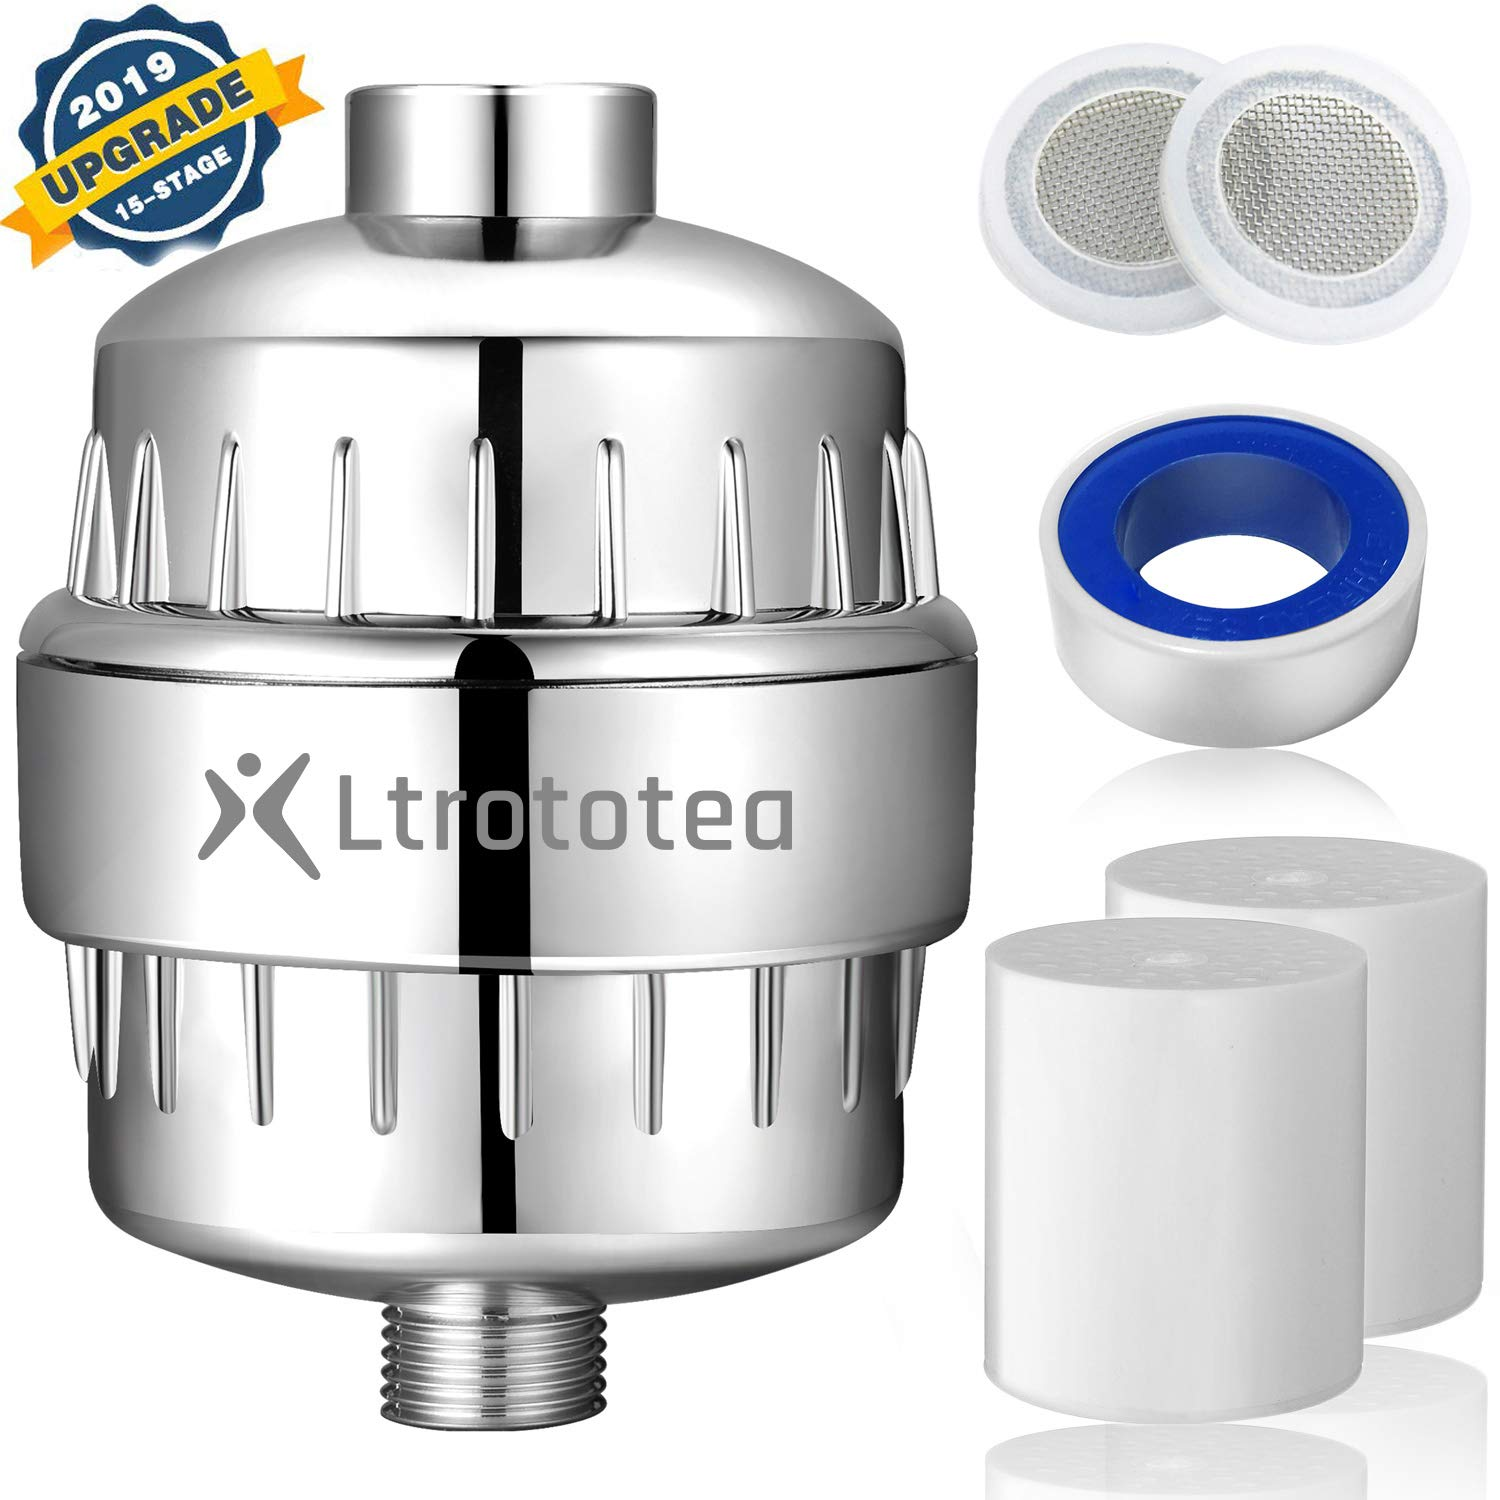 15 Stage Shower Filter Hard Water Filter to Remove Chlorine and Fluoride Universal High Output Vitamin C Shower Head Filter 2 Cartridges Included Reduces Dry Itchy Skin, Dandruff, Eczema by Ltrototea